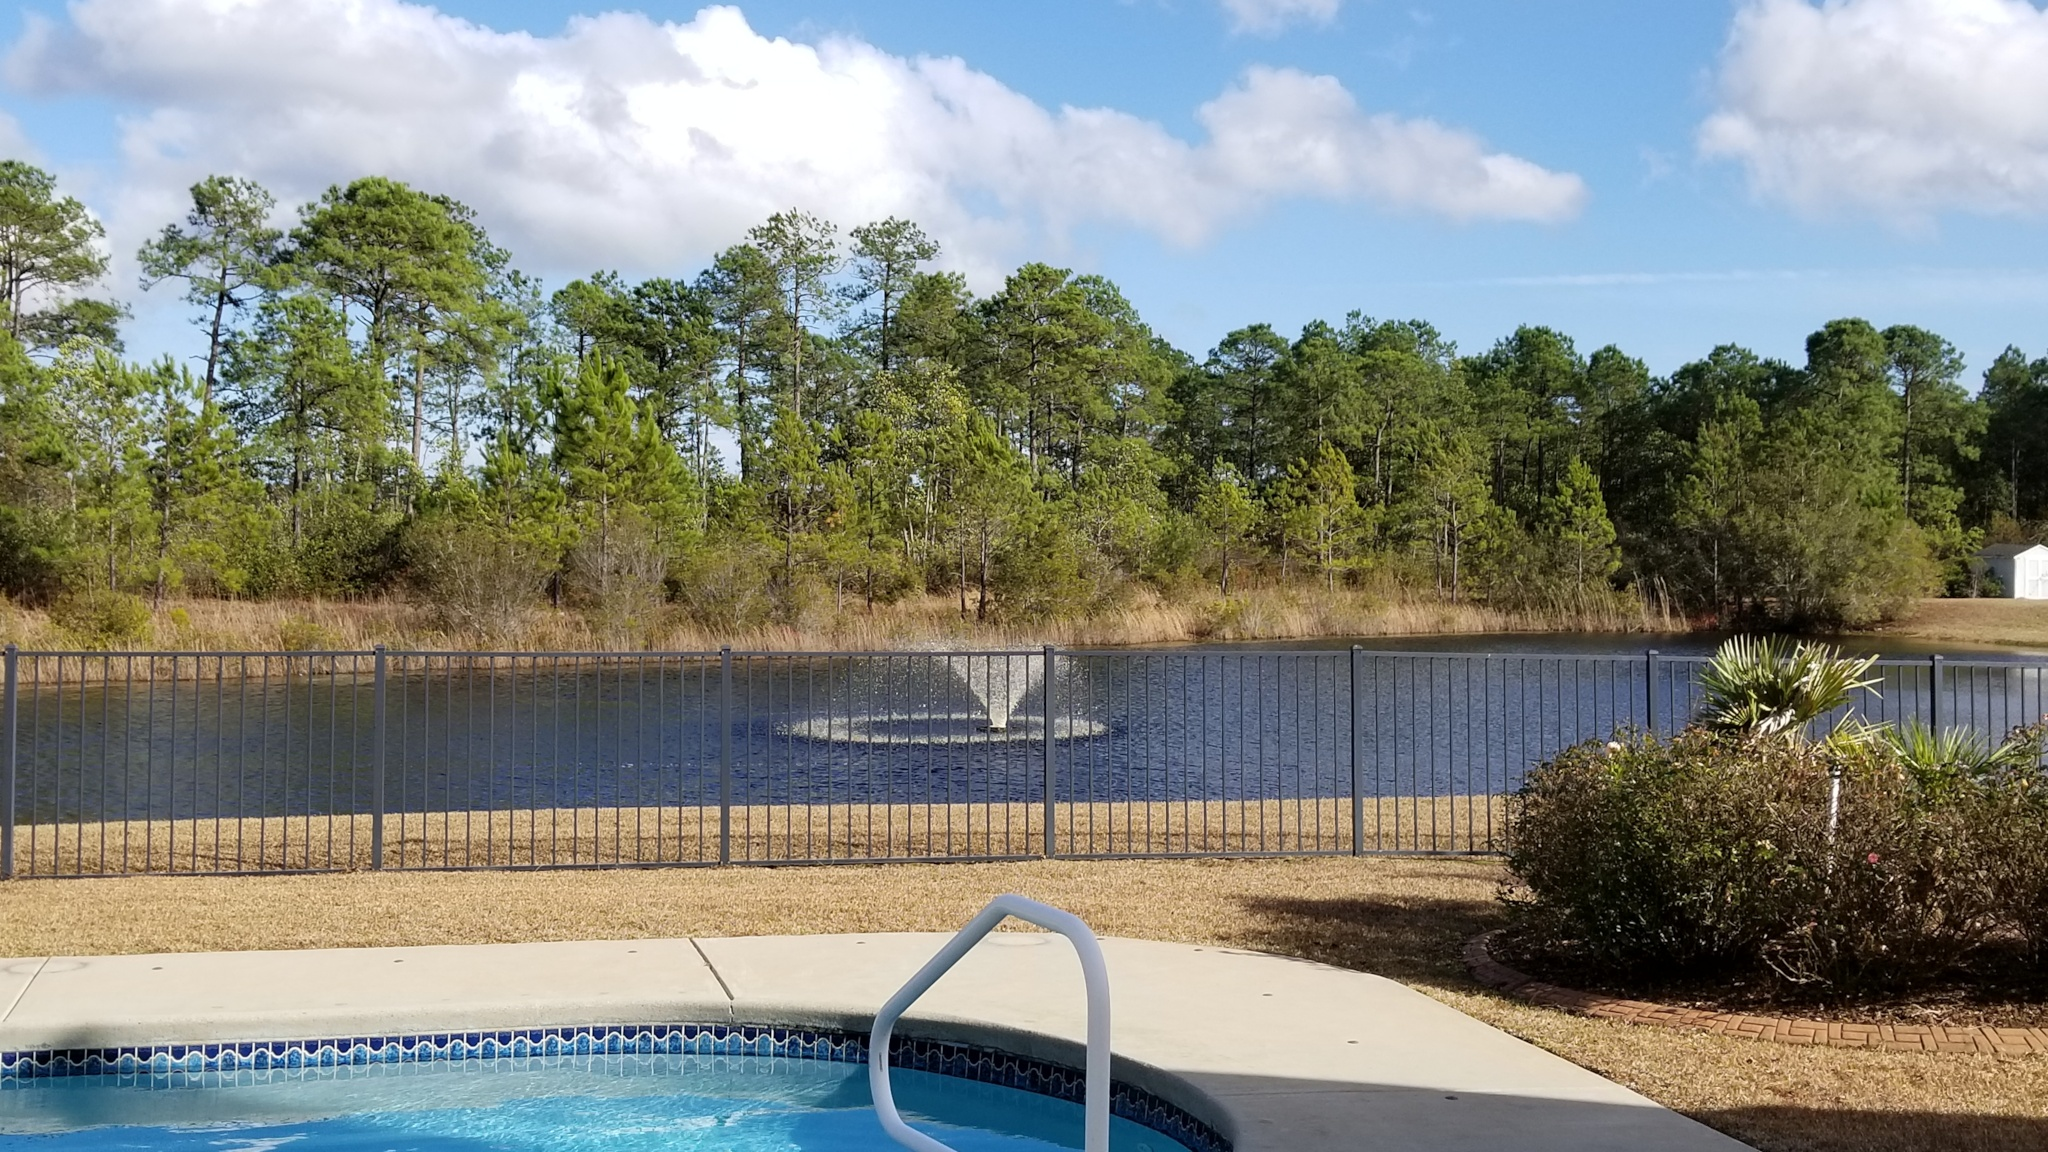 SOLD! – Home with Pool Overlooking Lake in Waterford